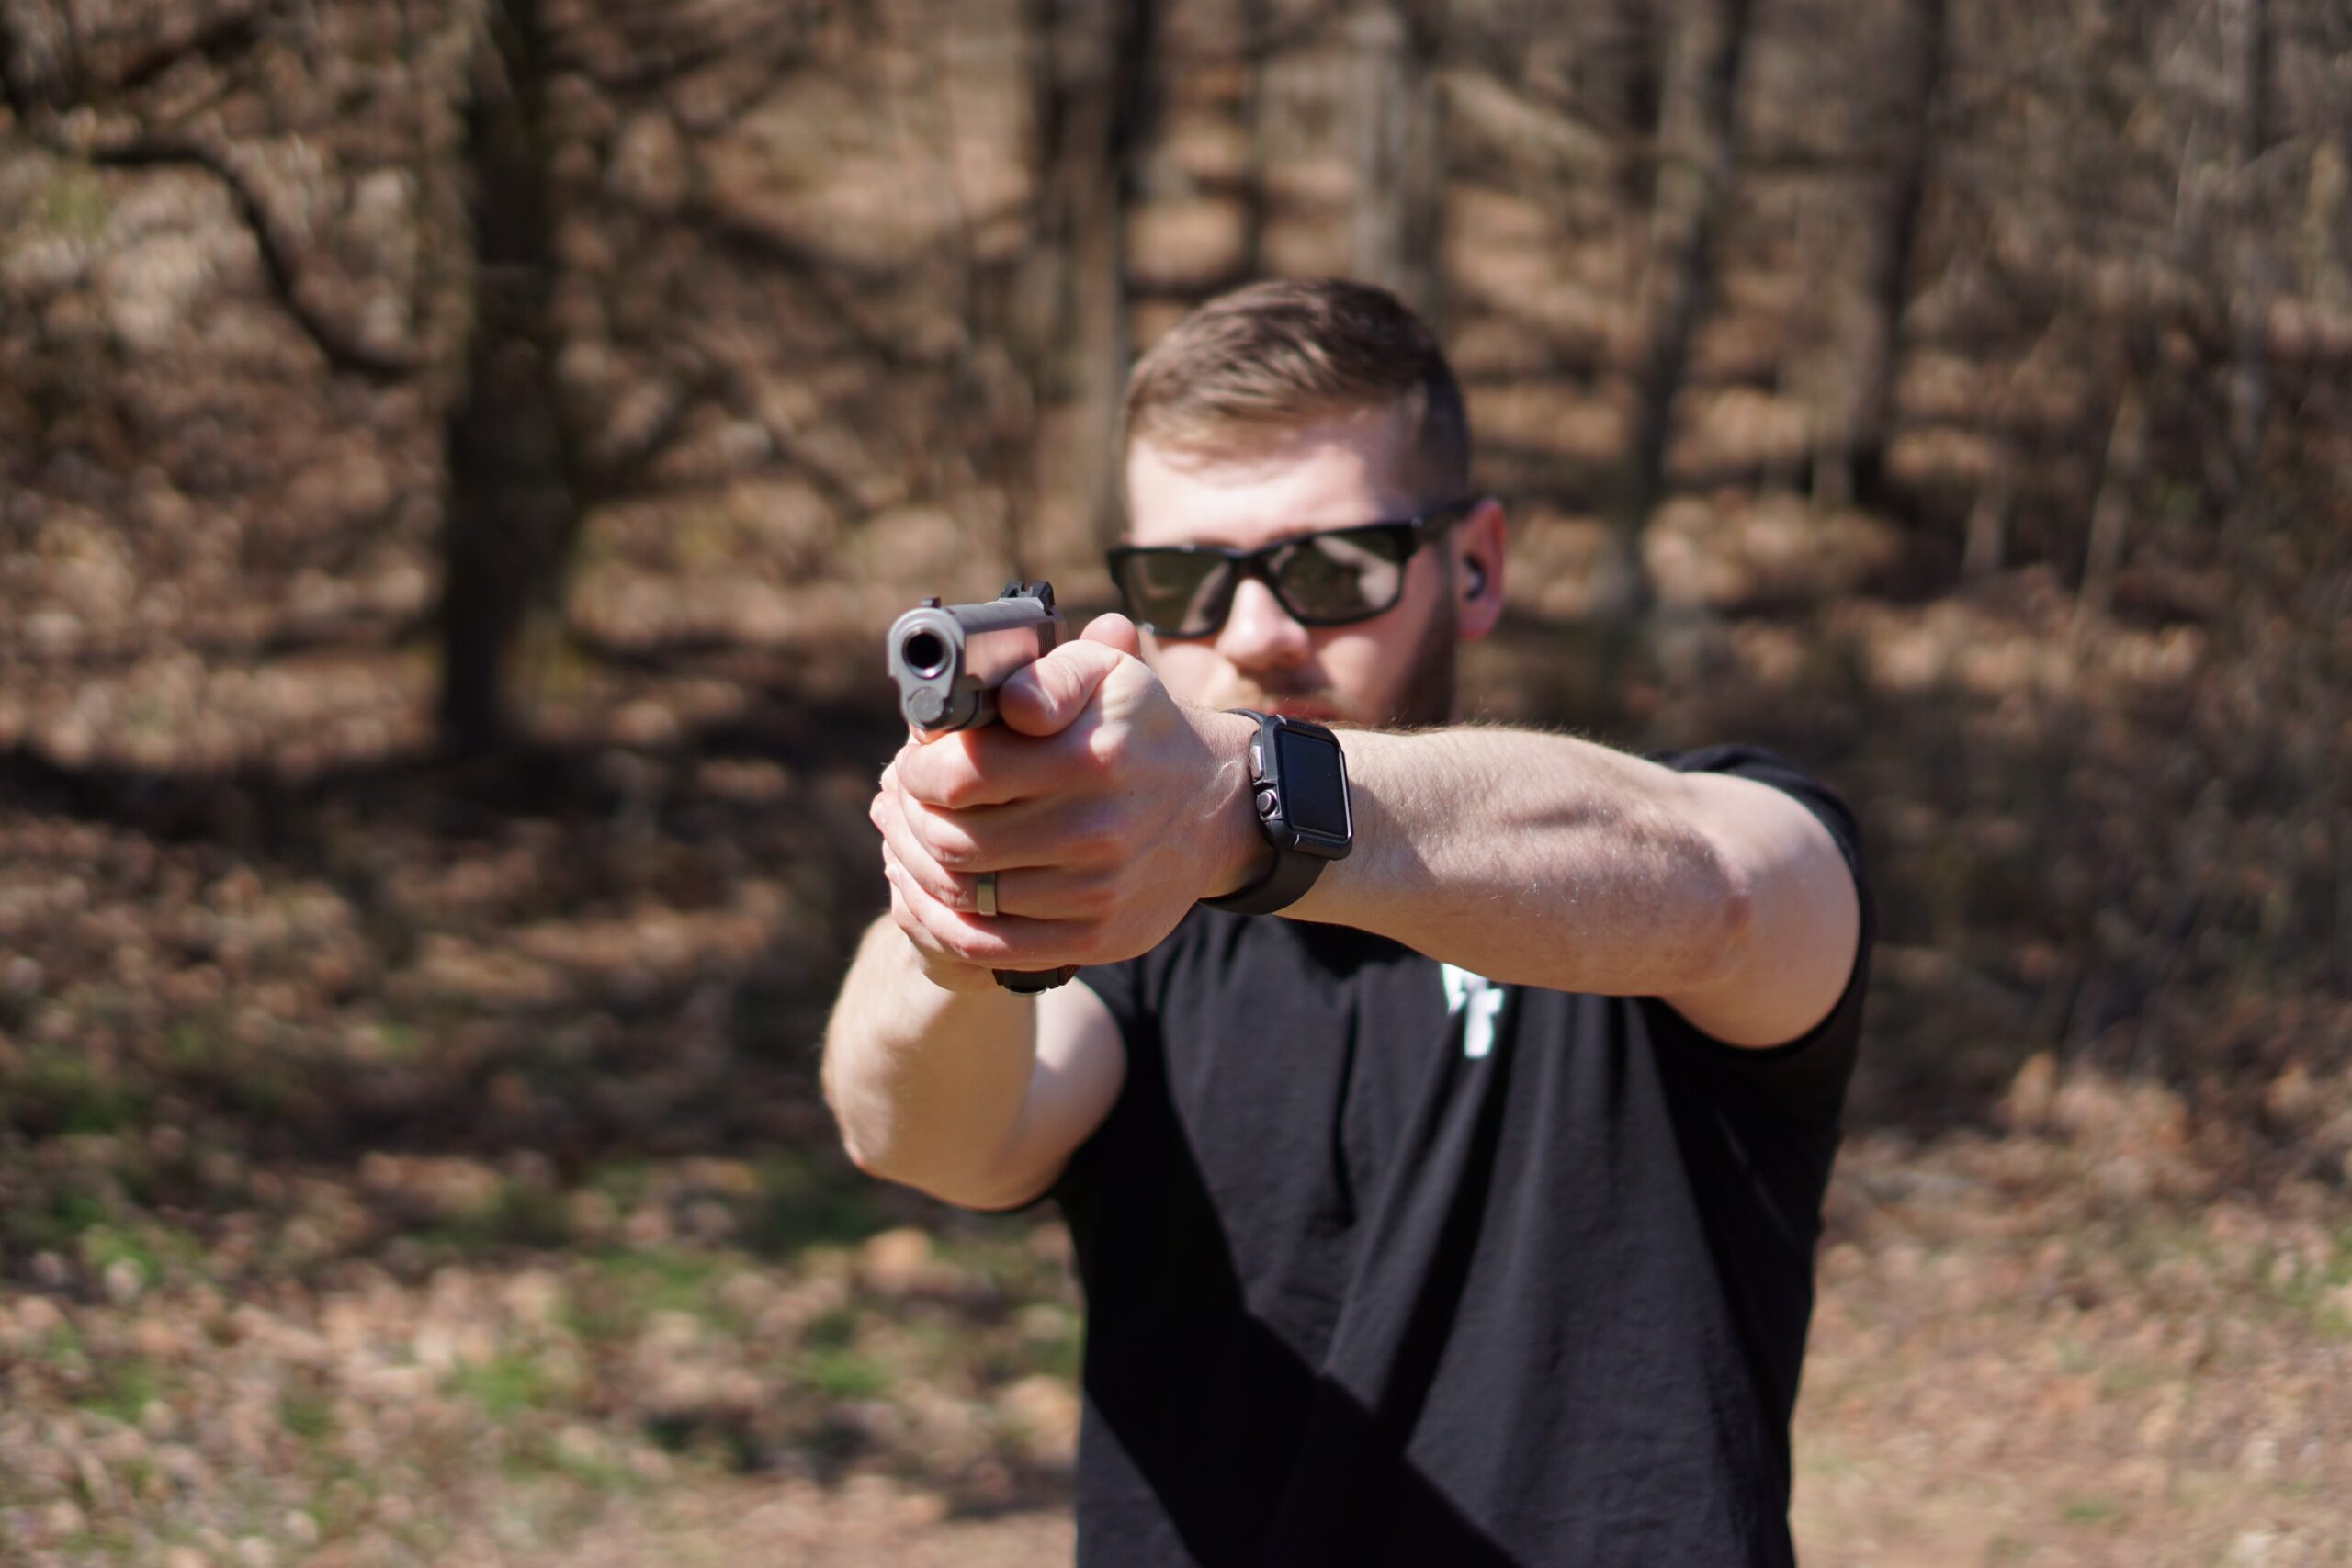 The Author firing a Dan Wesson 1911 Classic pistol at a shooting range